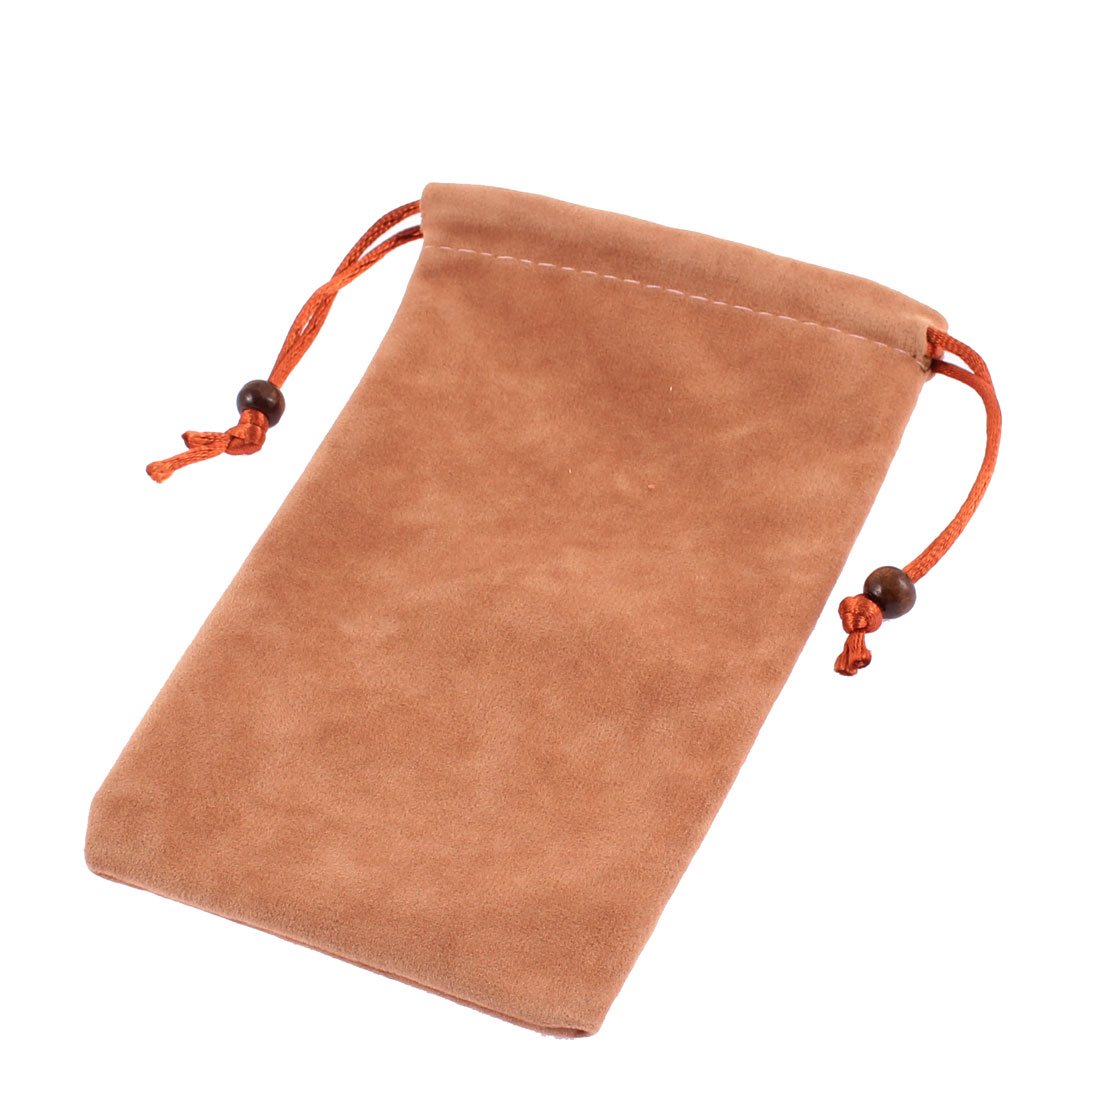 Velvet Drawstring Closure Cell Phone Pouch Sleeve Bag Camel 15.5 x 9.5cm